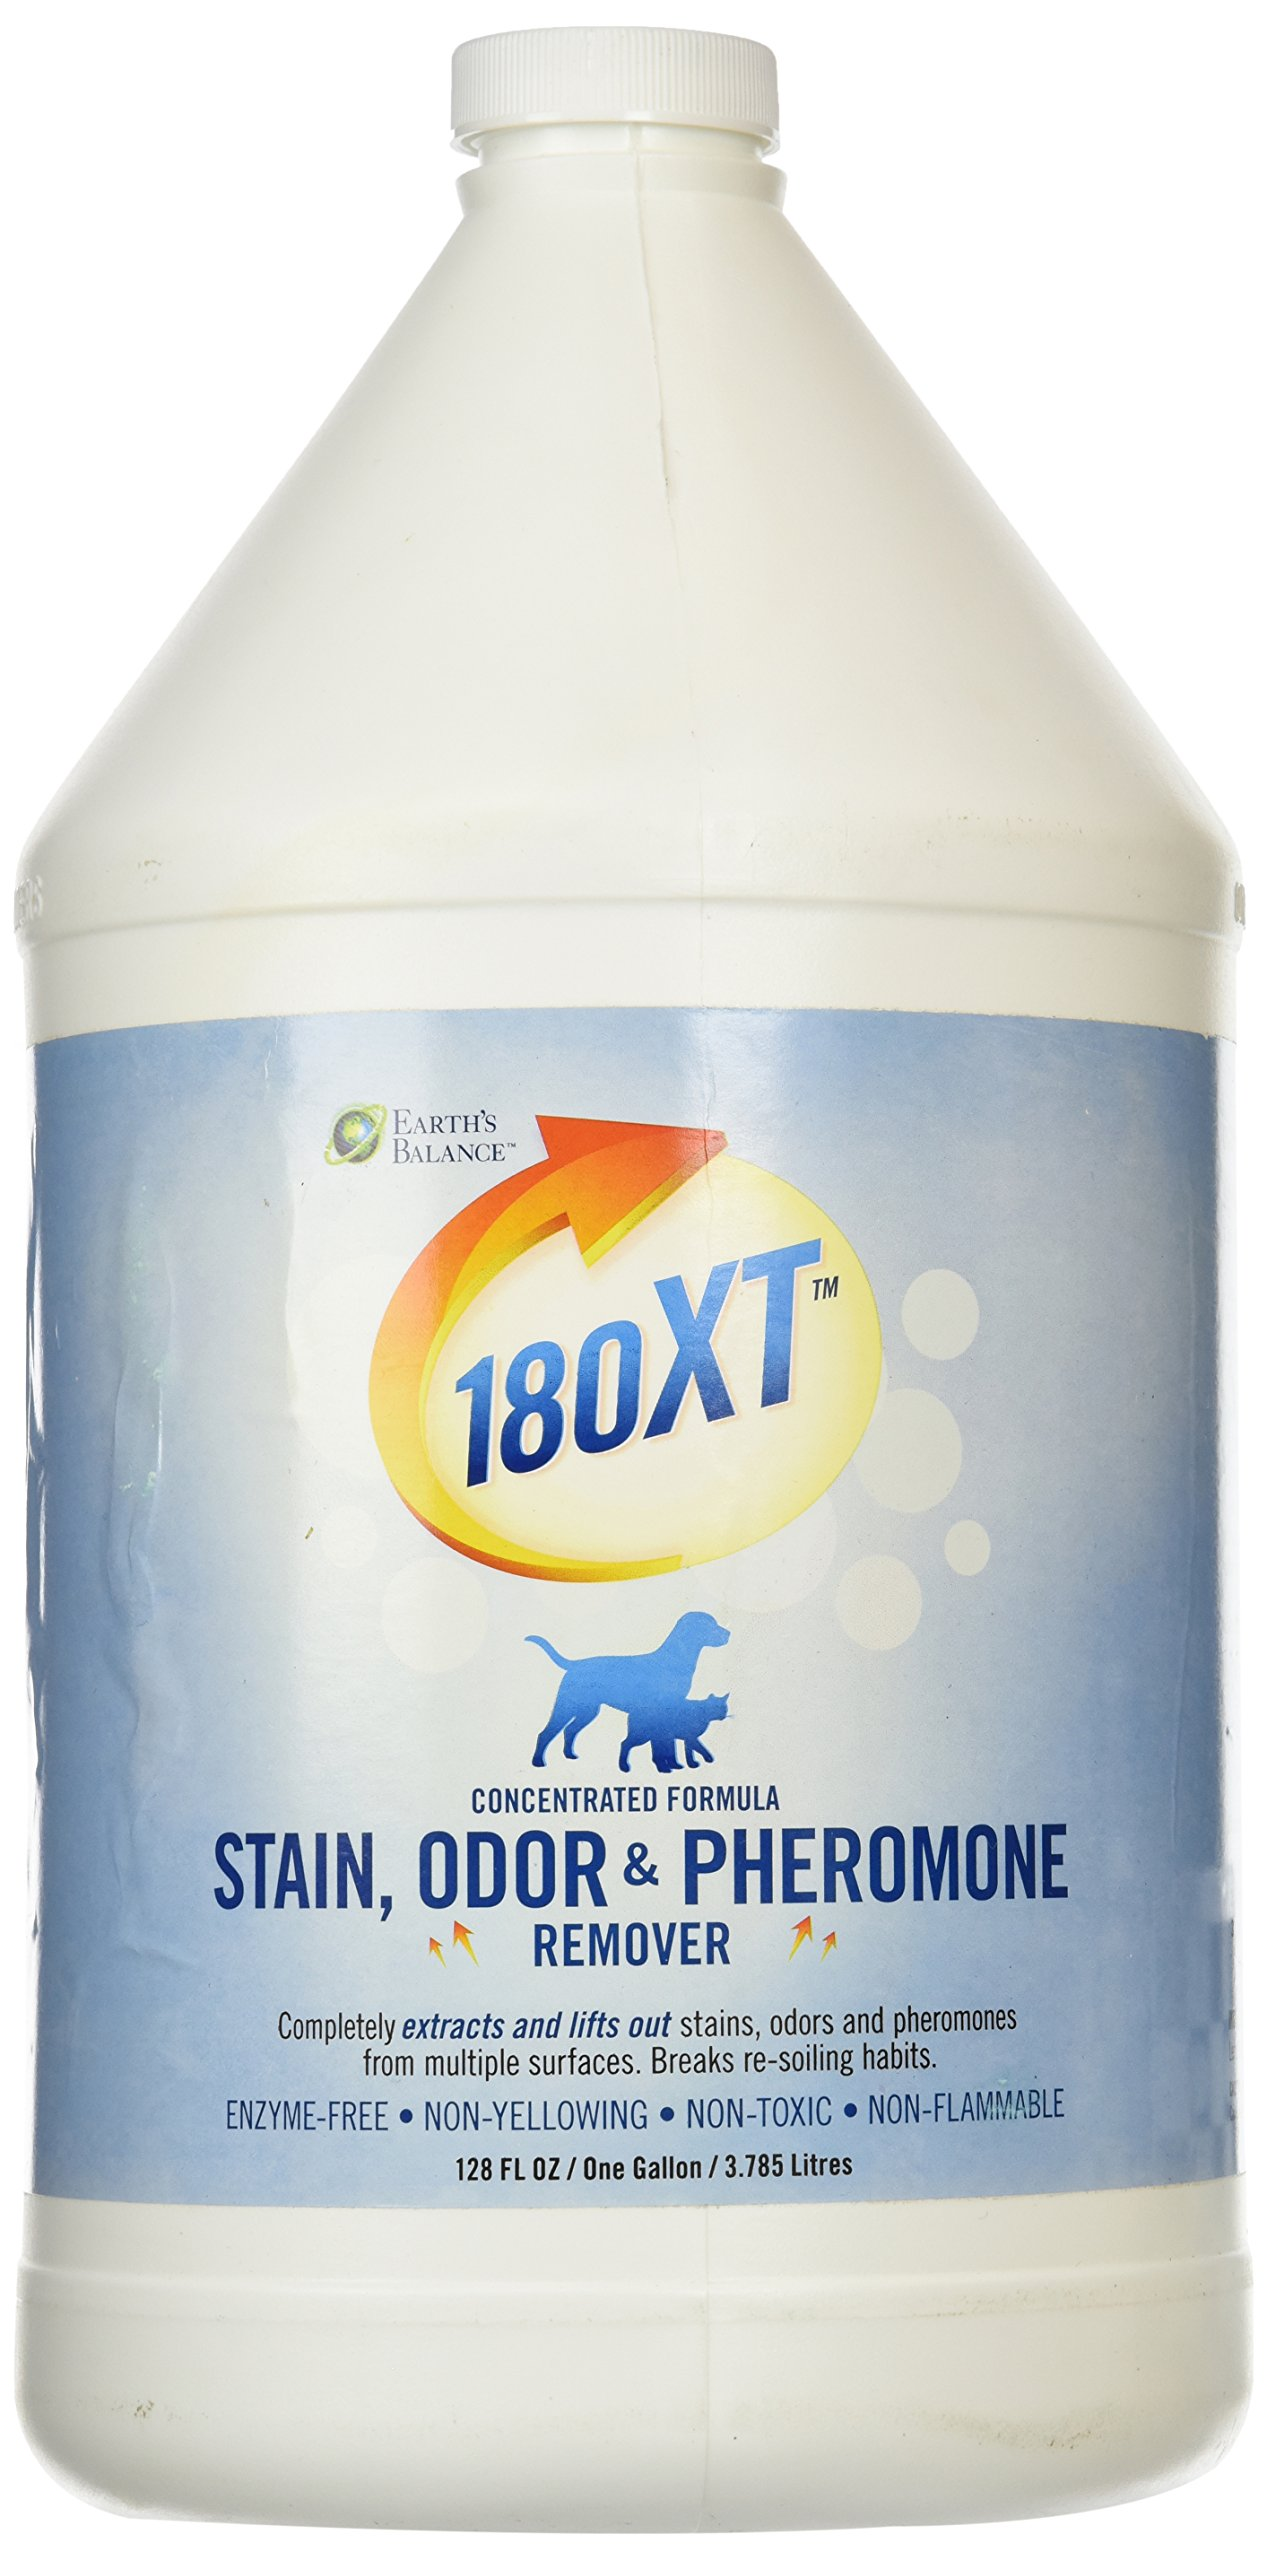 Earth's Balance SMR30704 Earth's Balance Small Animal 180 XT Stain Odor and Pheromone Remover, 1-Gallon